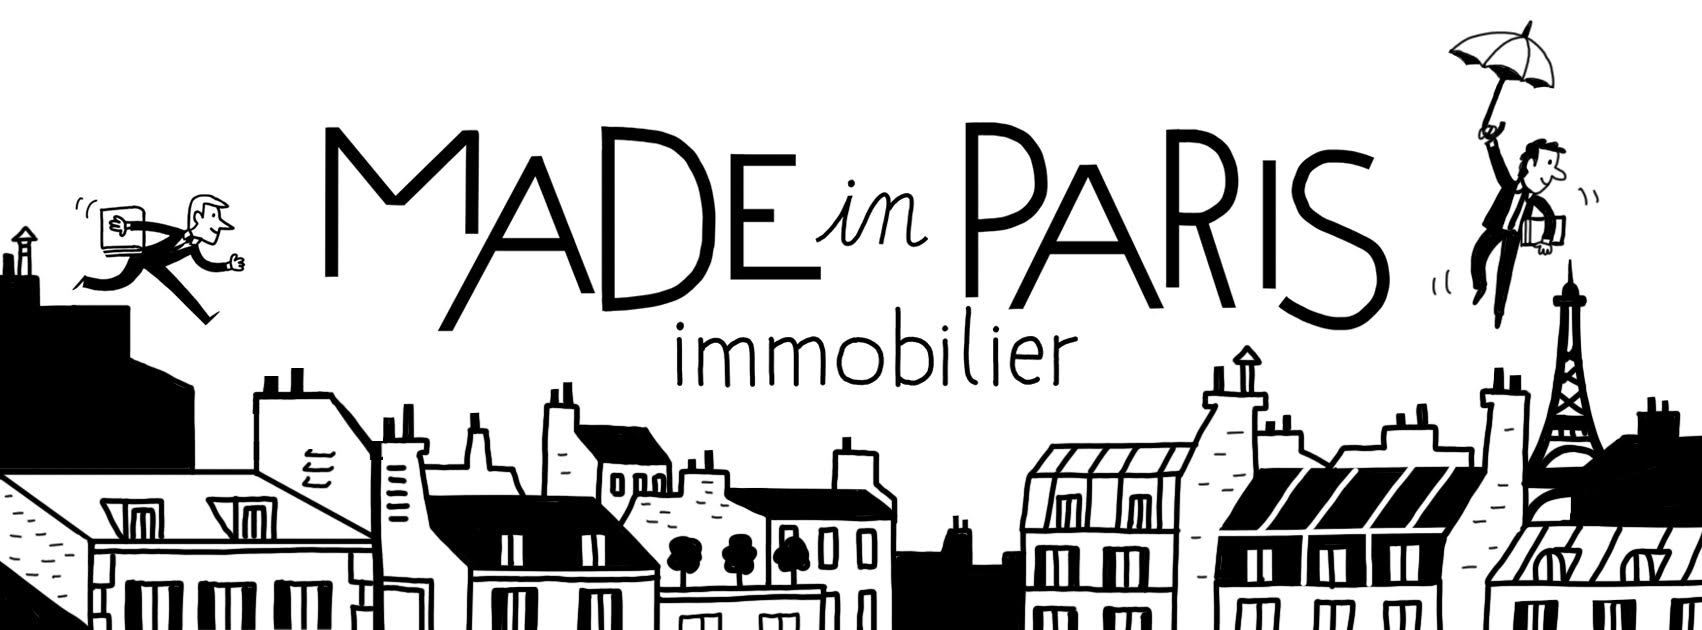 Made In Paris - Immobilier